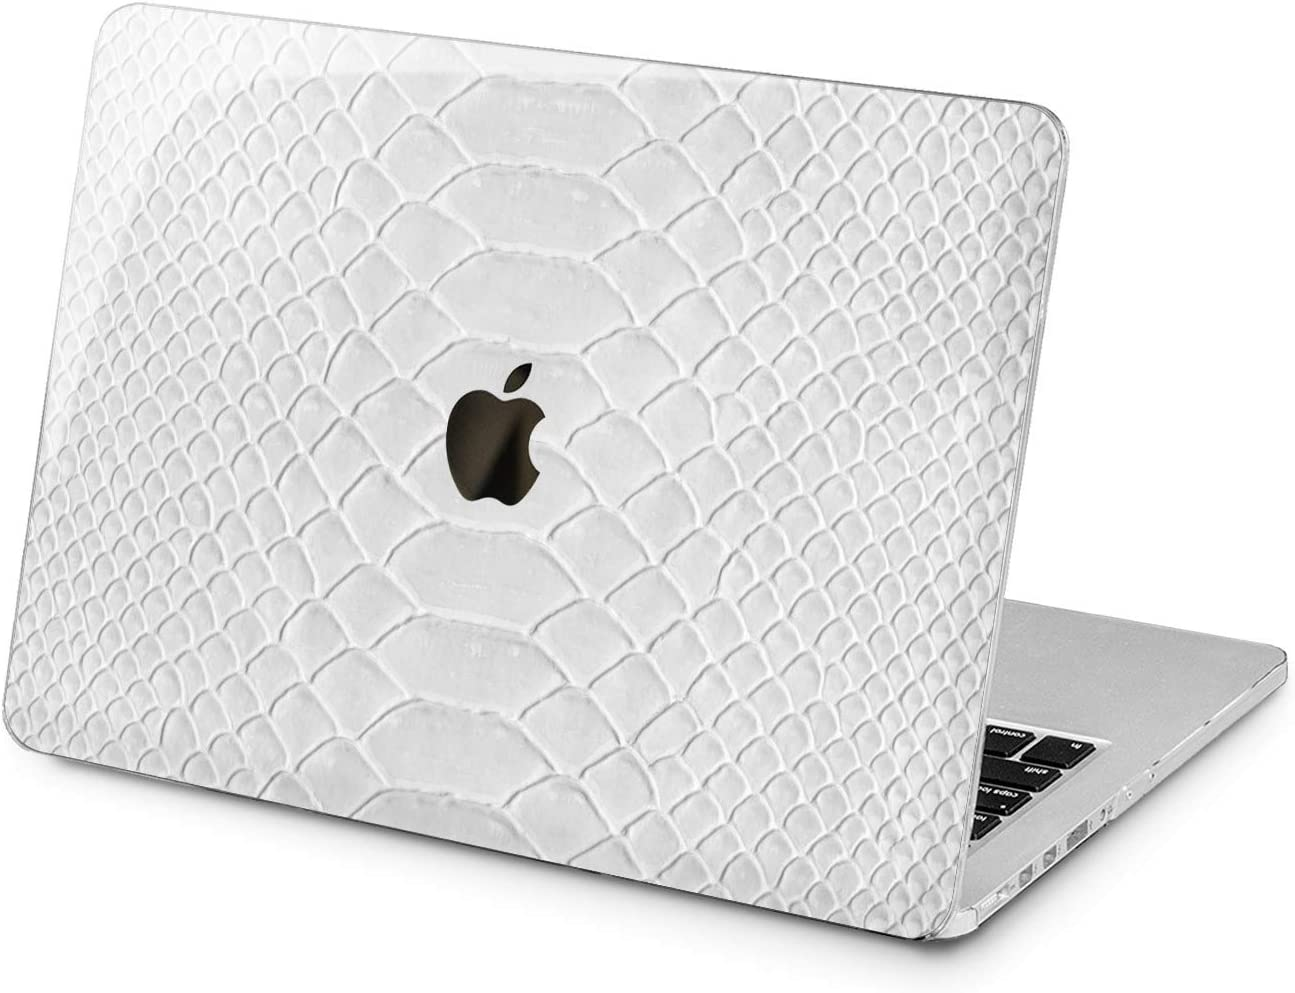 "Cavka Hard Shell Case for Apple MacBook Pro 13"" 2019 15"" 2018 Air 13"" 2020 Retina 2015 Mac 11"" Mac 12"" Texture Royal Plastic Skin Design Snake Leather Cover Laptop Glam Print Grain Protective White"